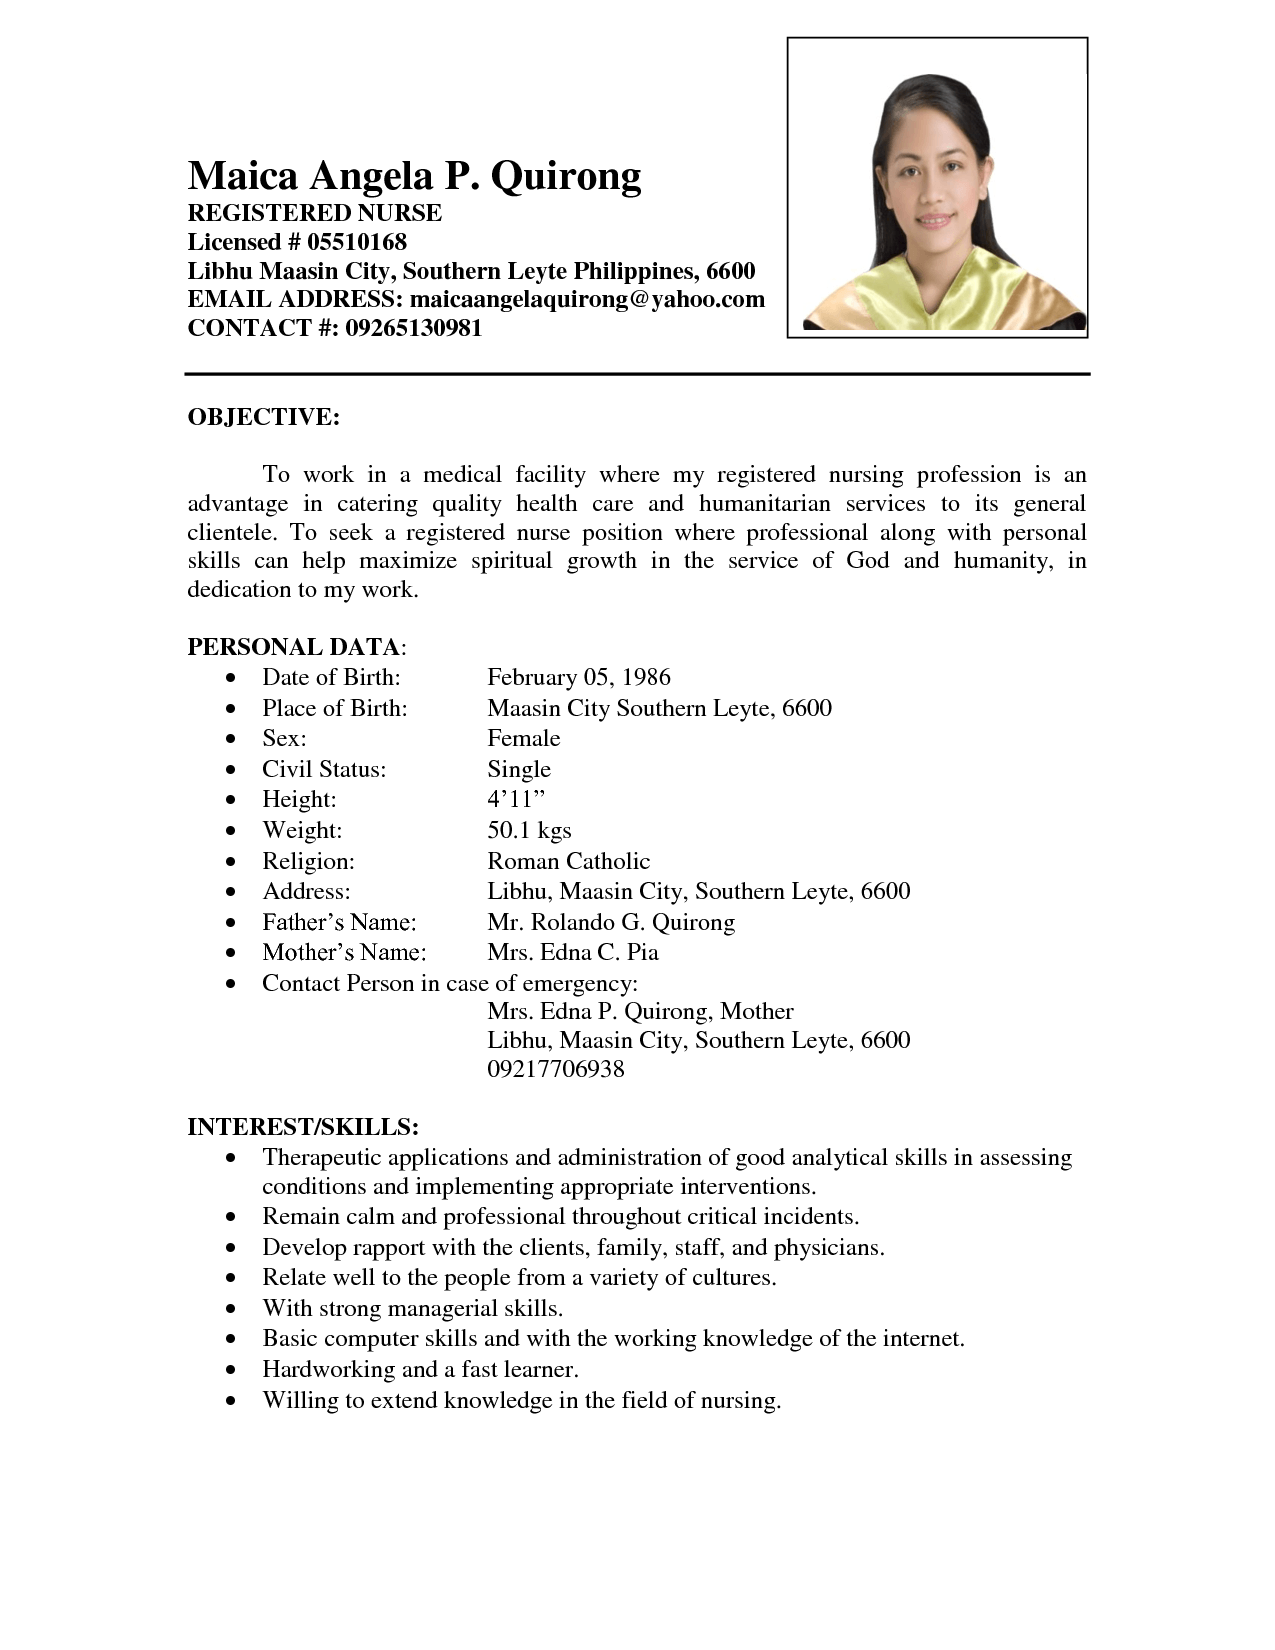 Registered nurse cover letter sample application for nurses registered nurse cover letter sample application for nurses hospital cute new grad madrichimfo Images